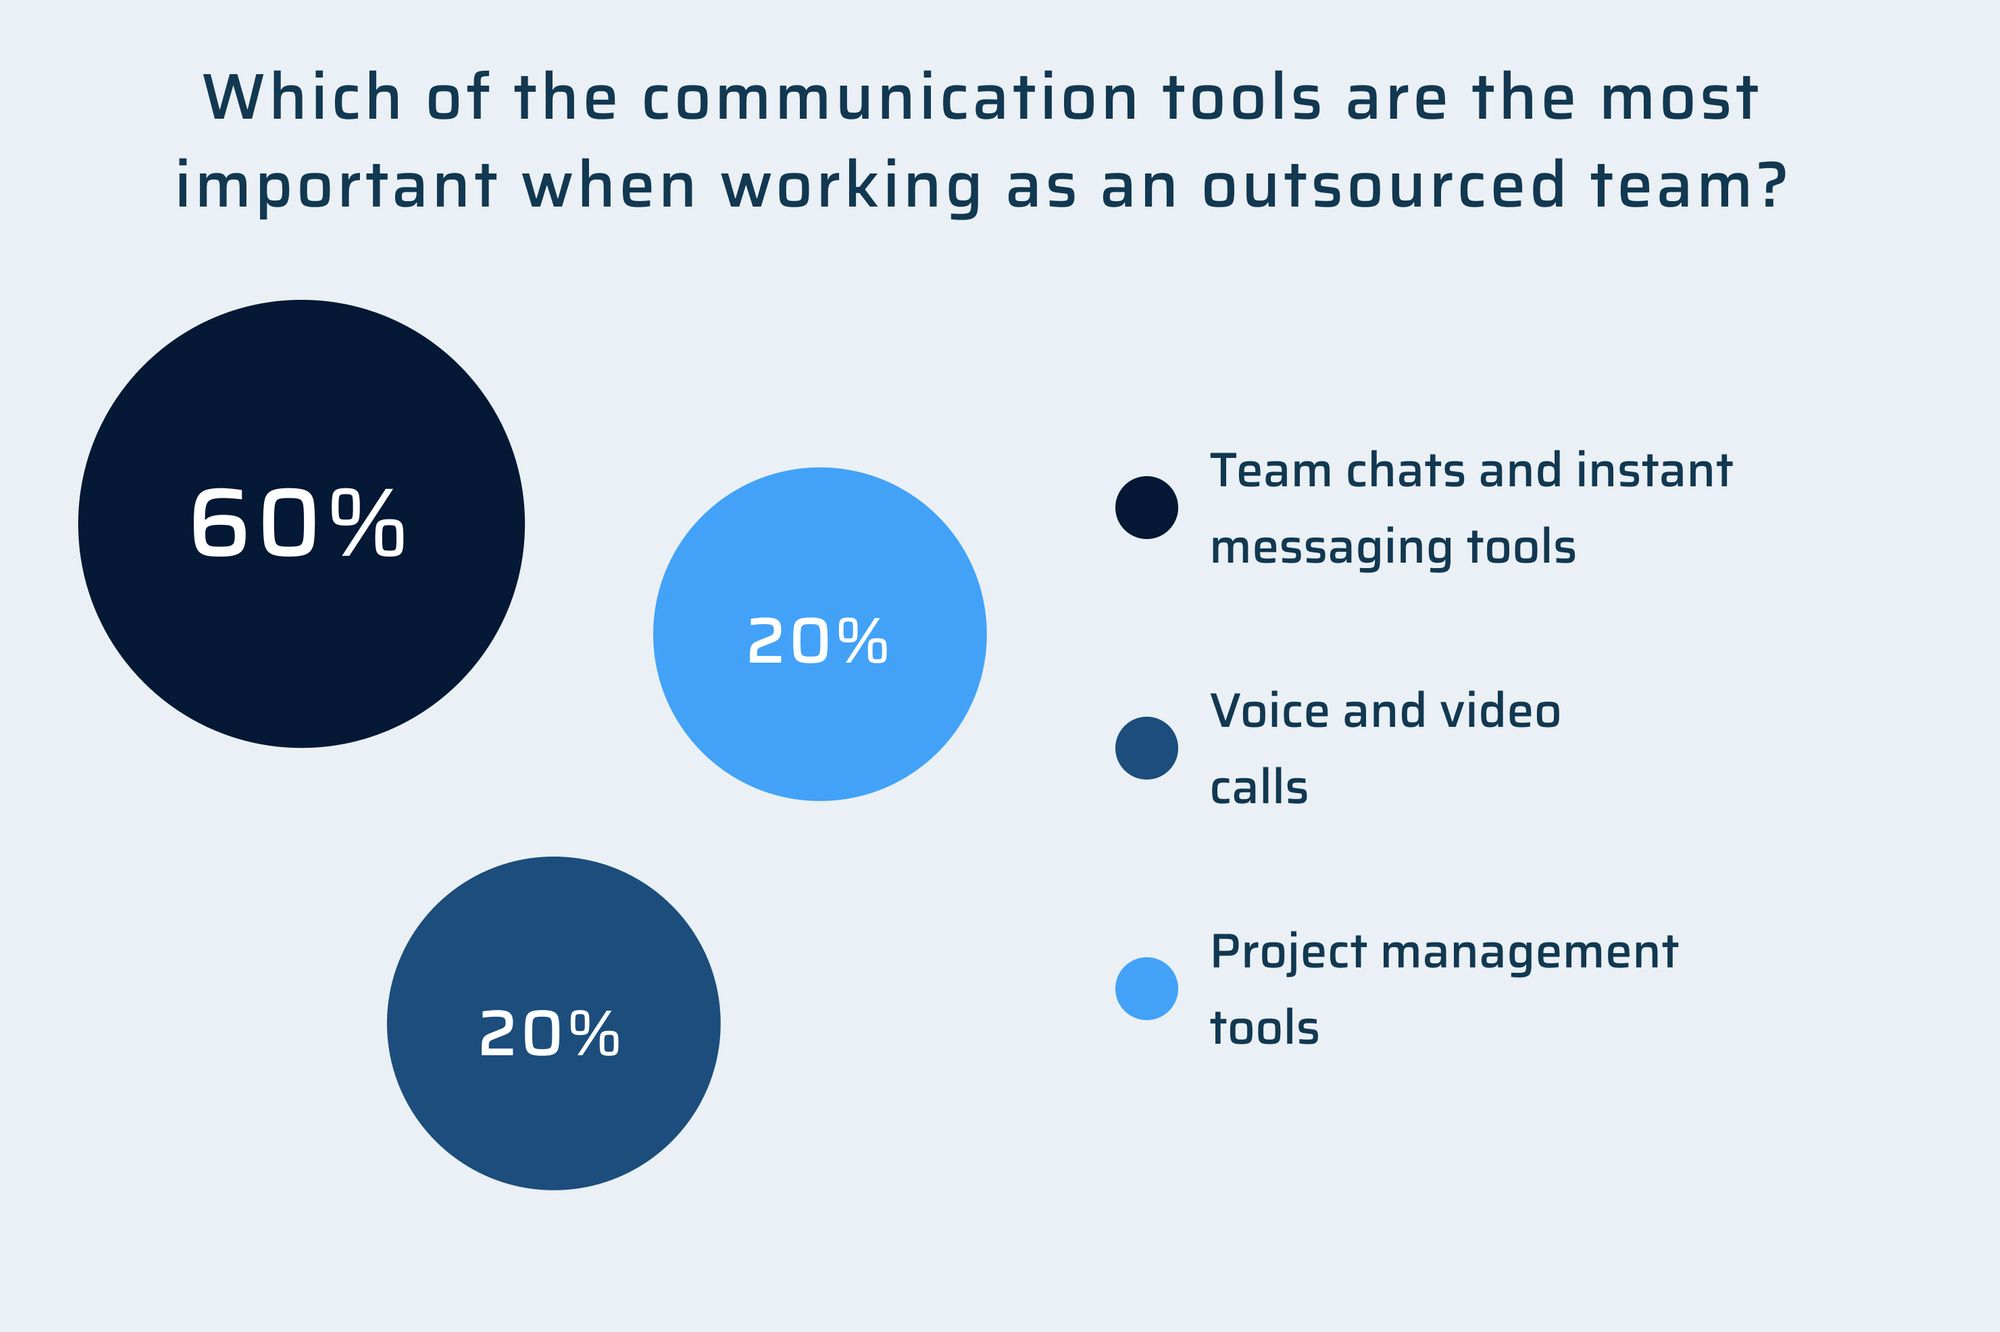 Communication tools to work with outsourced team